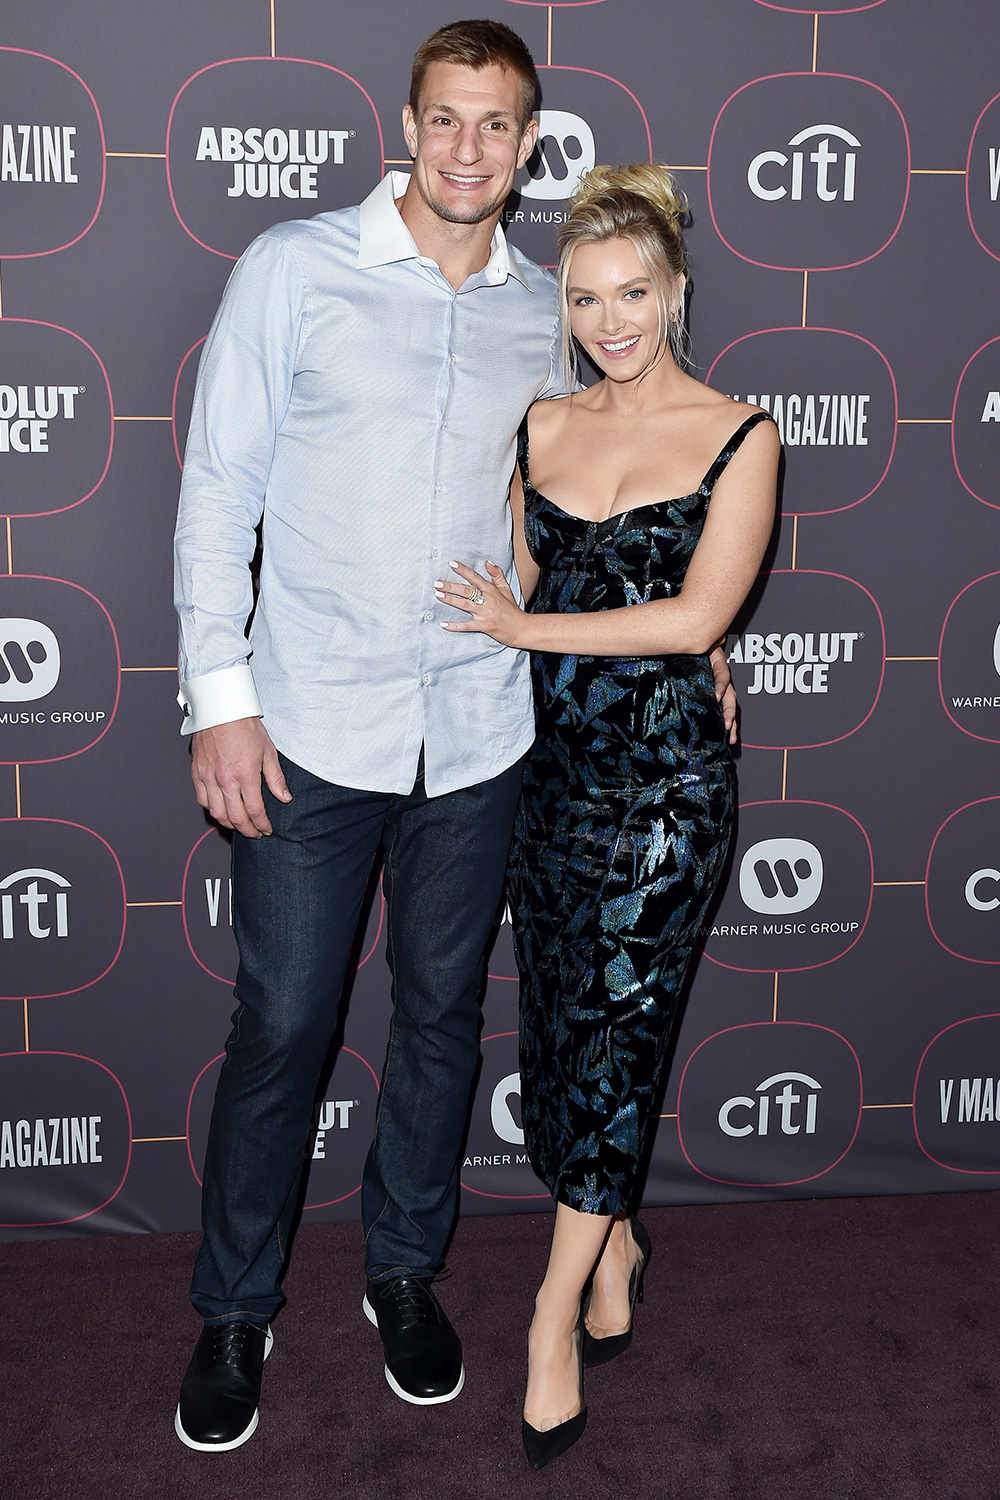 Rob Gronkowski and Camille Kostek attend Warner Music Group Pre-Grammy Party 2020 at Hollywood Athletic Club on January 23, 2020 in Hollywood, California